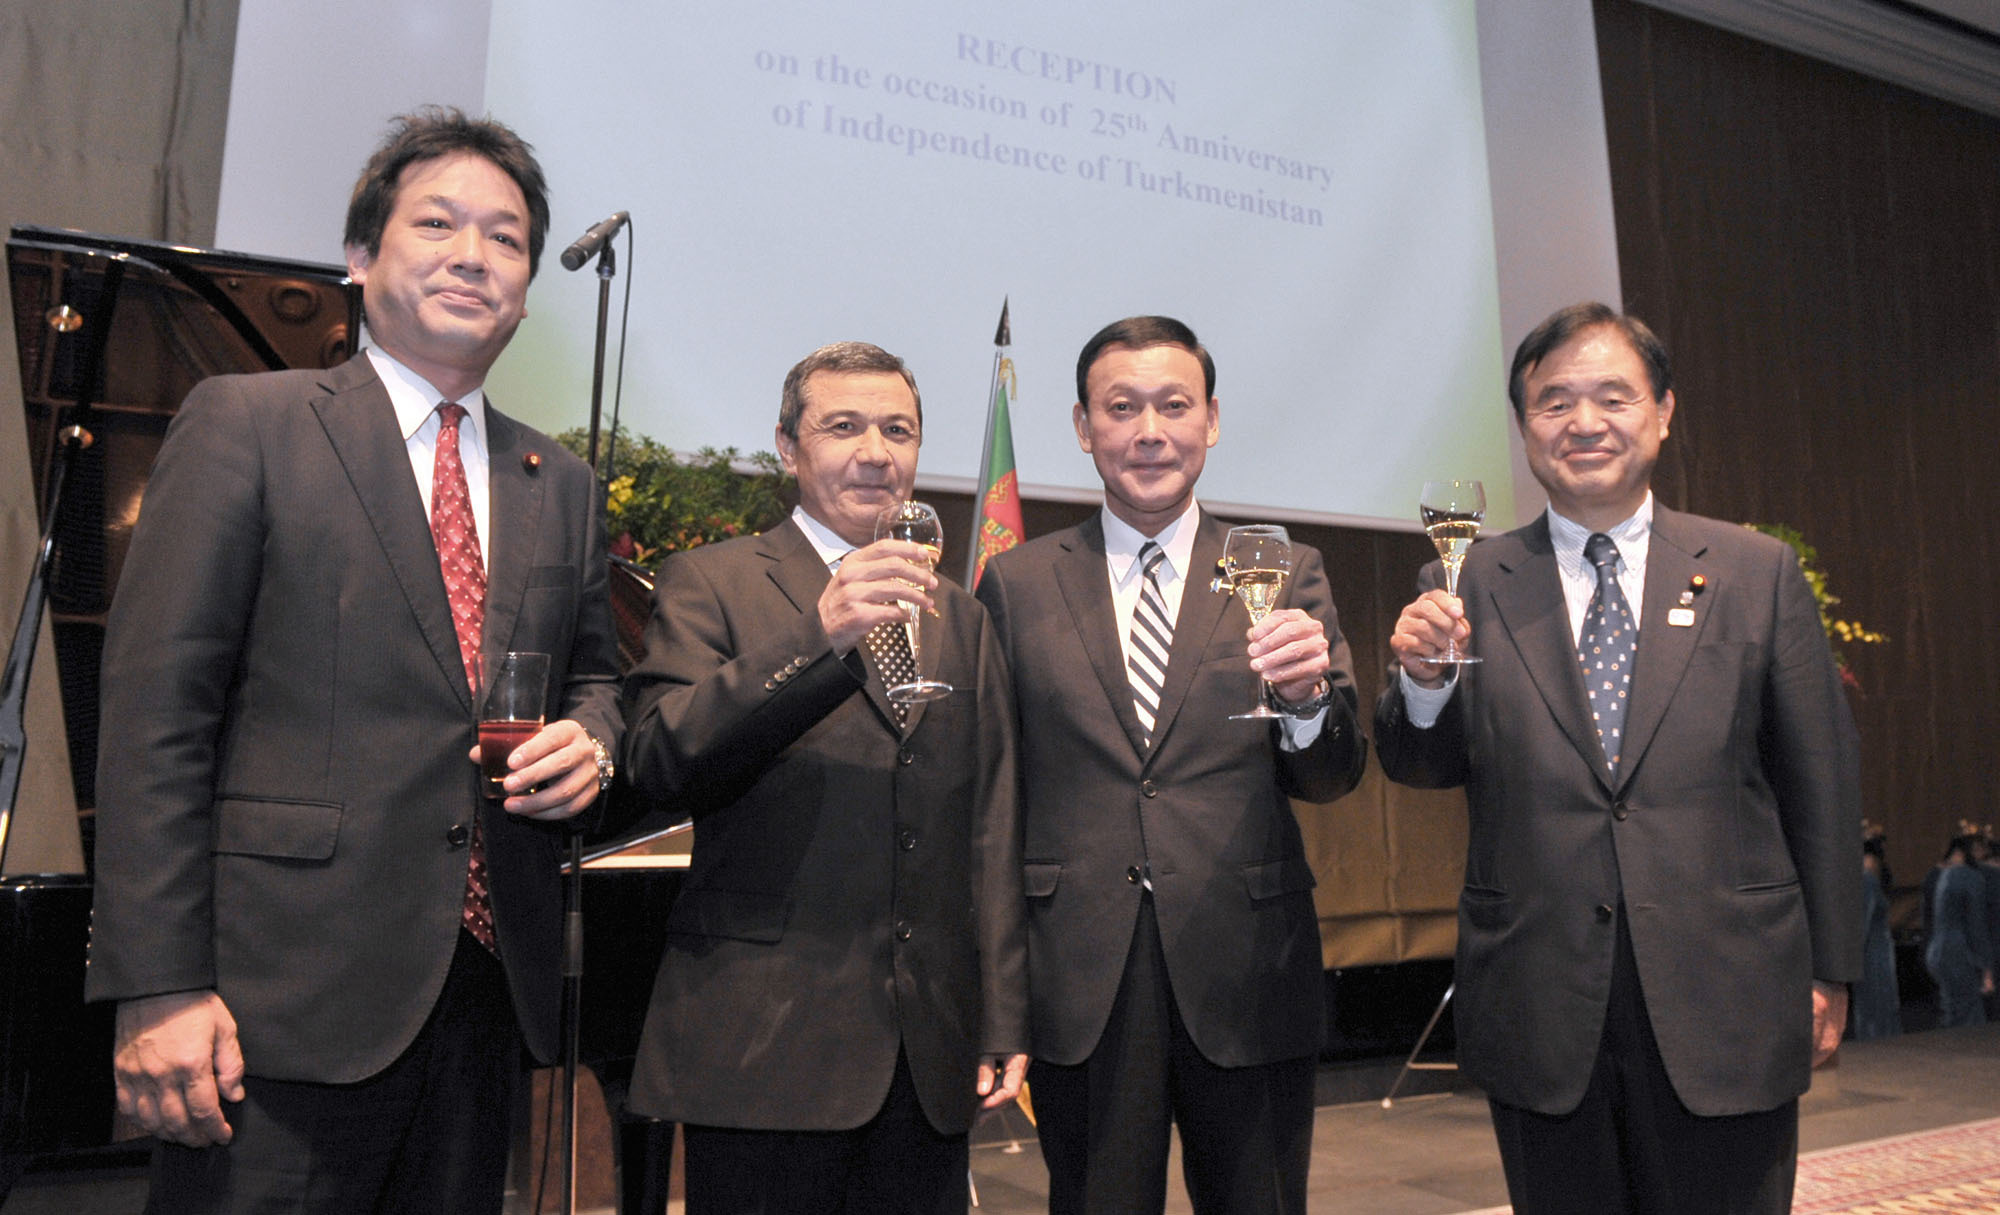 Turkmenistan's Ambassador Gurbanmammet Elyasov (second from left) prepares for a toast with (from left) parliamentary vice ministers for foreign affairs Kentaro Sonoura and Motome Takisawa and Toshiaki Endo, chairman of the Japan-Turkmenistan Parliamentary Friendship League, during a reception to celebrate the country's 25th anniversary of independence at the Palace Hotel Tokyo on Nov. 10. | YOSHIAKI MIURA